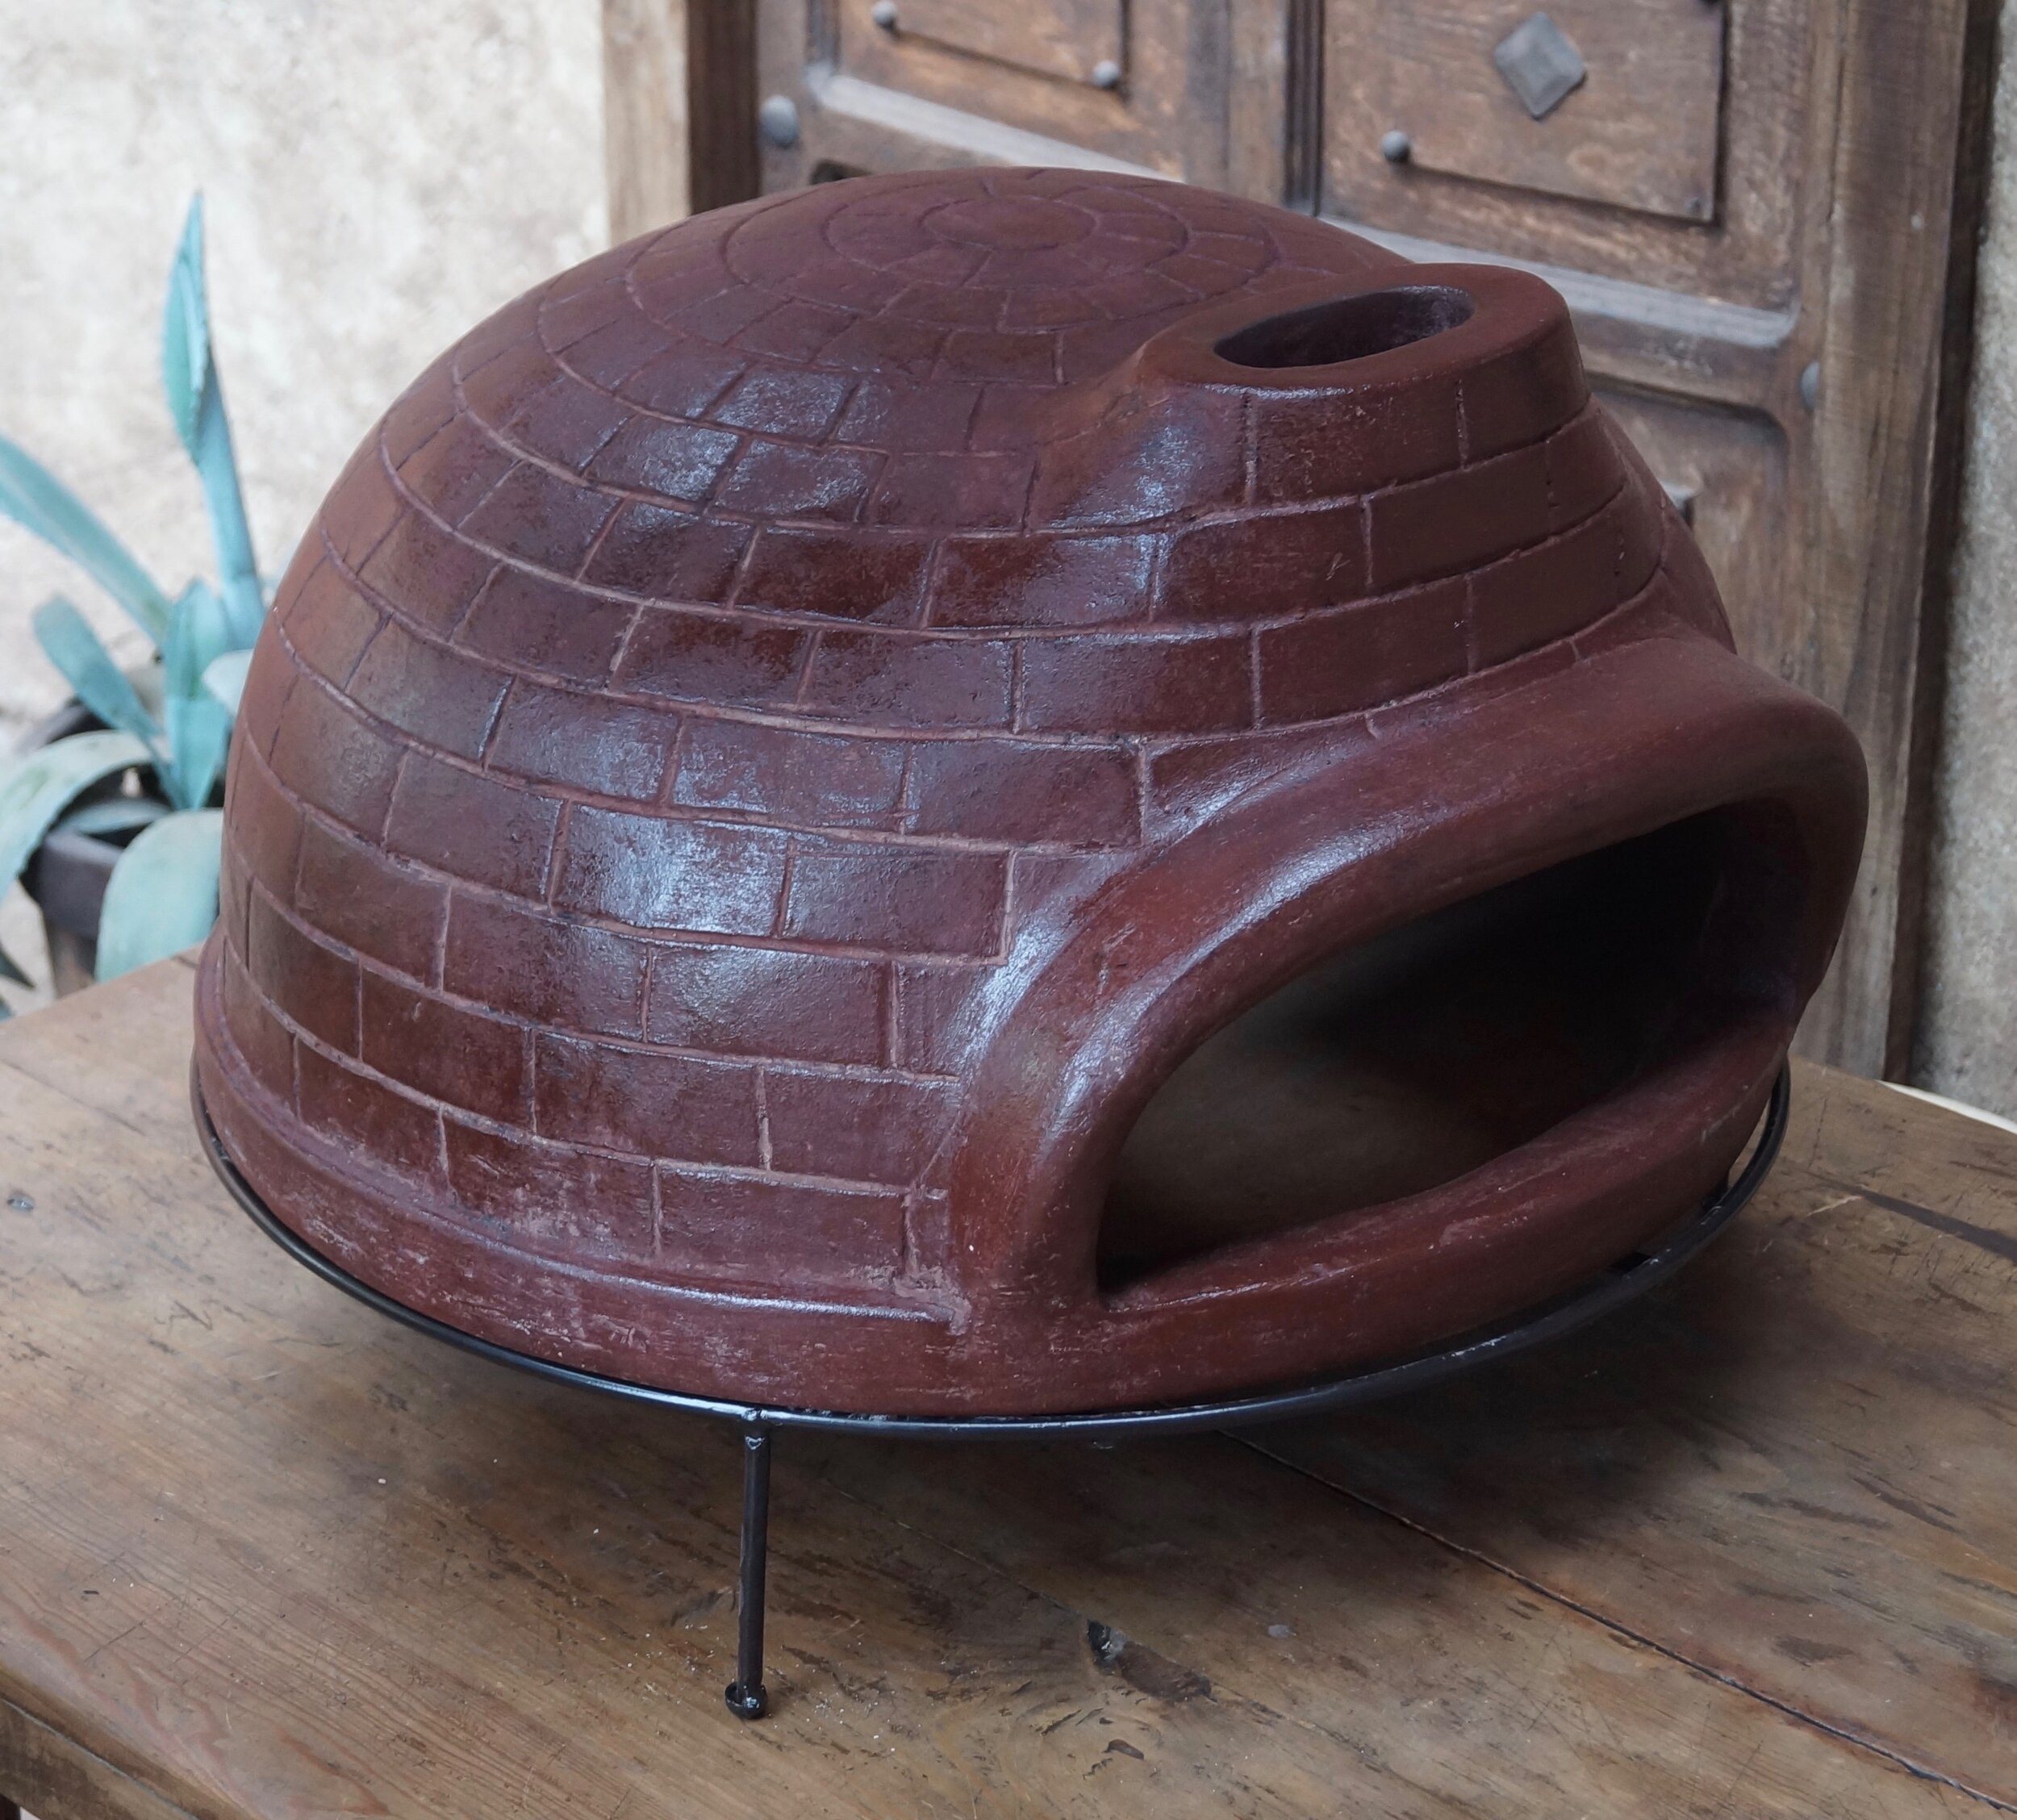 """Art. nr. 090RD. Wood-fired brick-design pizza oven ø67cm with iron base and protective bag included. Packed in wooden crate - 4 per pallet 80x80x198cm  Wholesale price Ex-Netherlands: 130 Euro + VAT  Containerprice Mexico: USD 109 in 20ft (200pc) or USD 98 in 40""""HC (480pc).  Mix products in your pallet- or container order."""